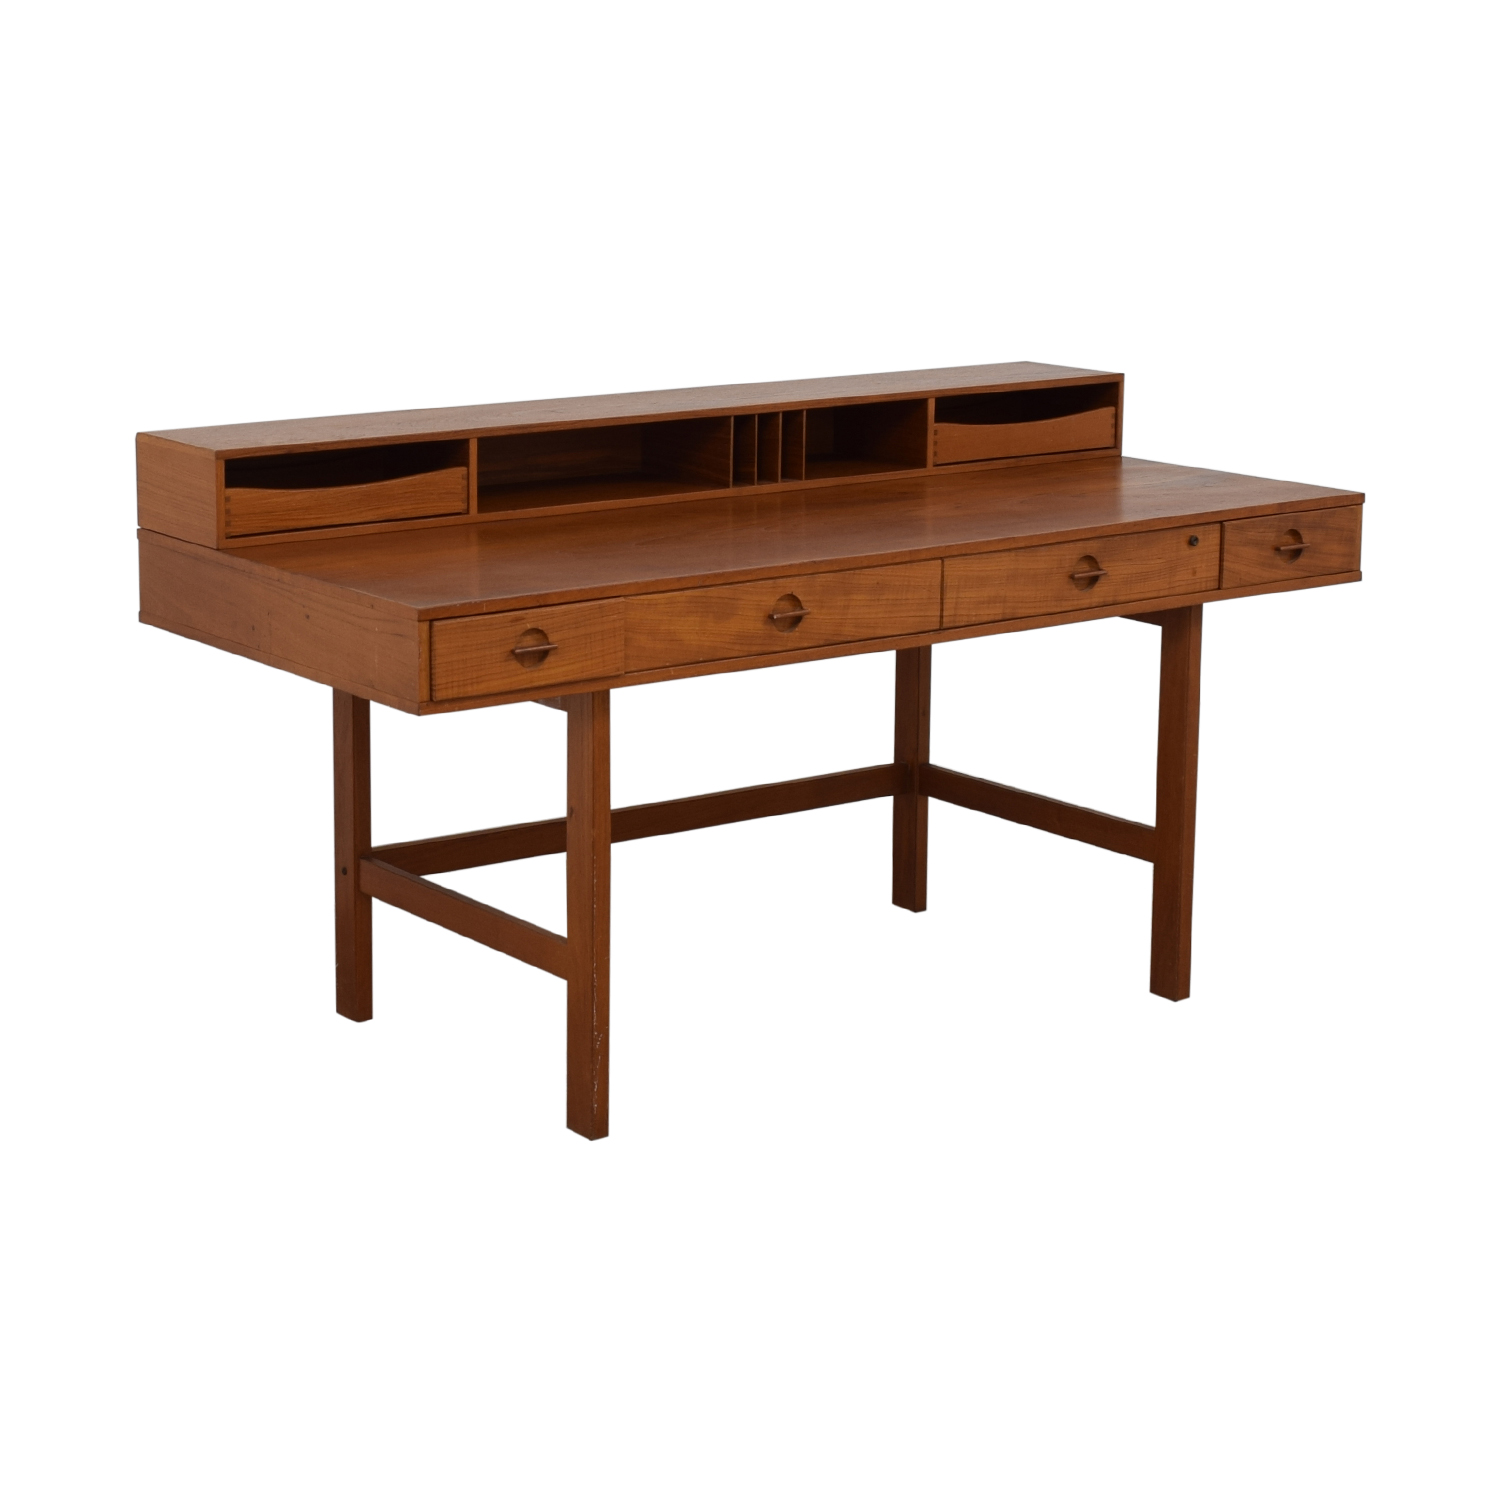 Peter Lovig Nielsen By Jens Quistgaard Flip-Top Desk in Teak / Utility Tables